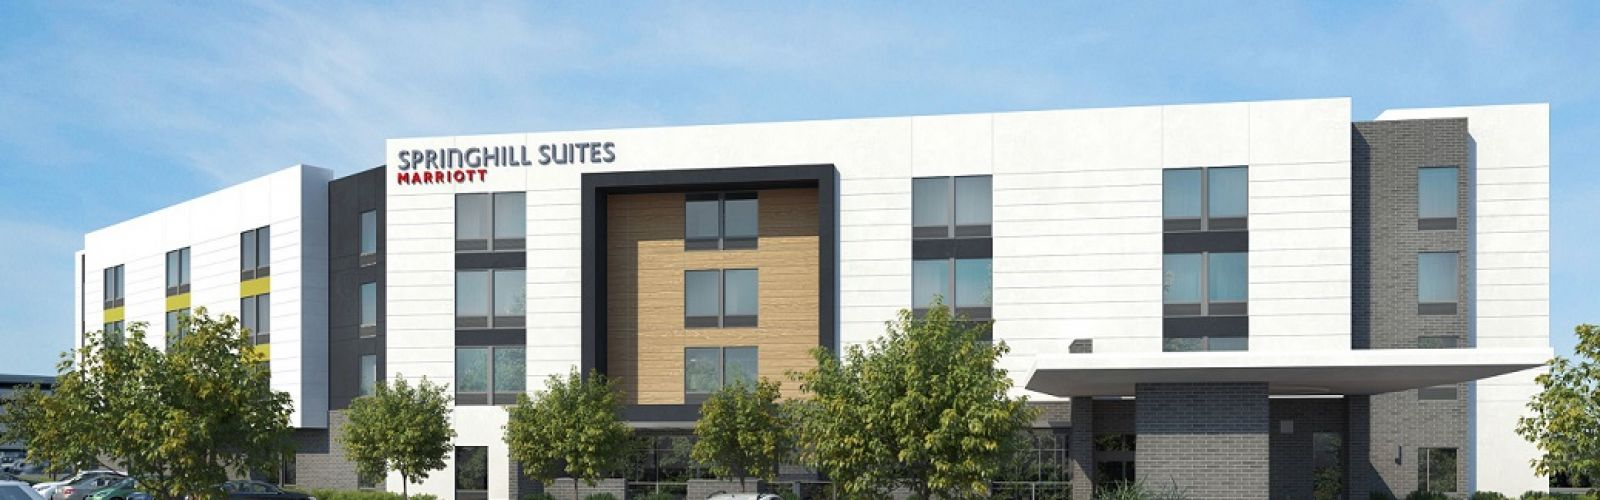 SpringHill Suites by Marriott Hotel Coming to Spokane International Airport